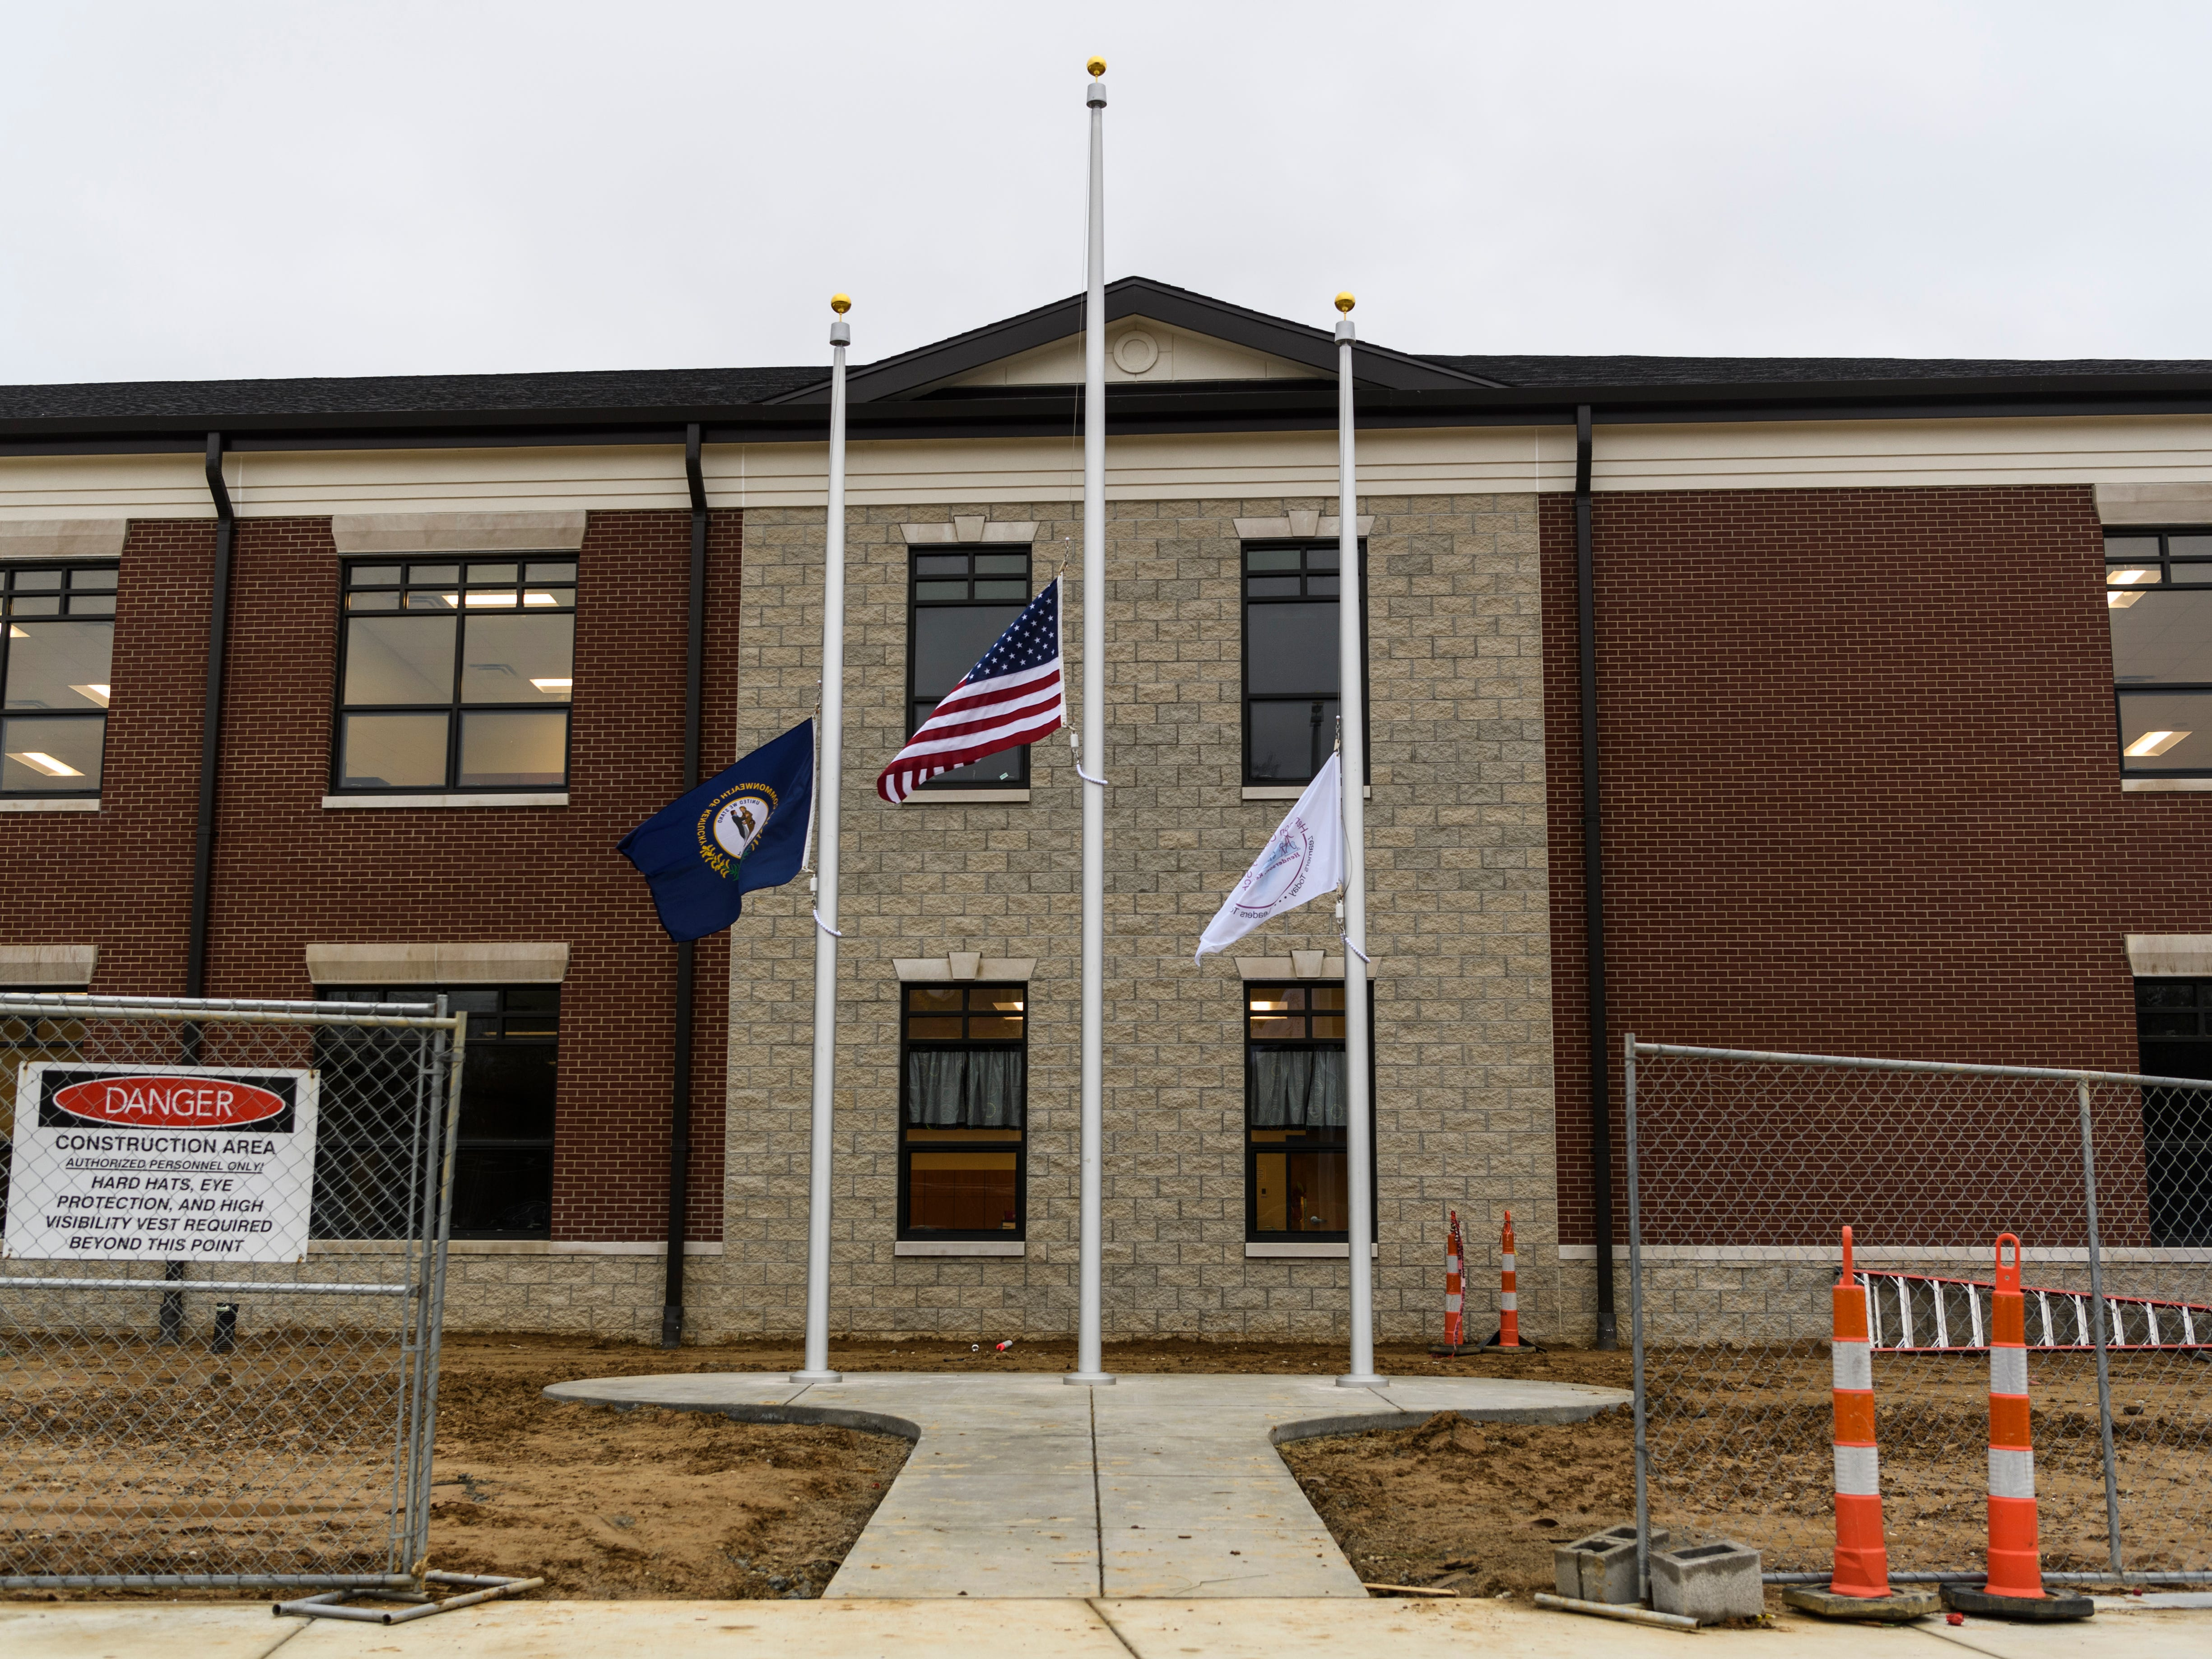 Construction is still happening on various parts of the new Spottsville Elementary School building in Henderson County, Ky. Faculty and students had their first school day inside the new $17 million, 76,796 square-foot facility, Monday, Nov. 12.